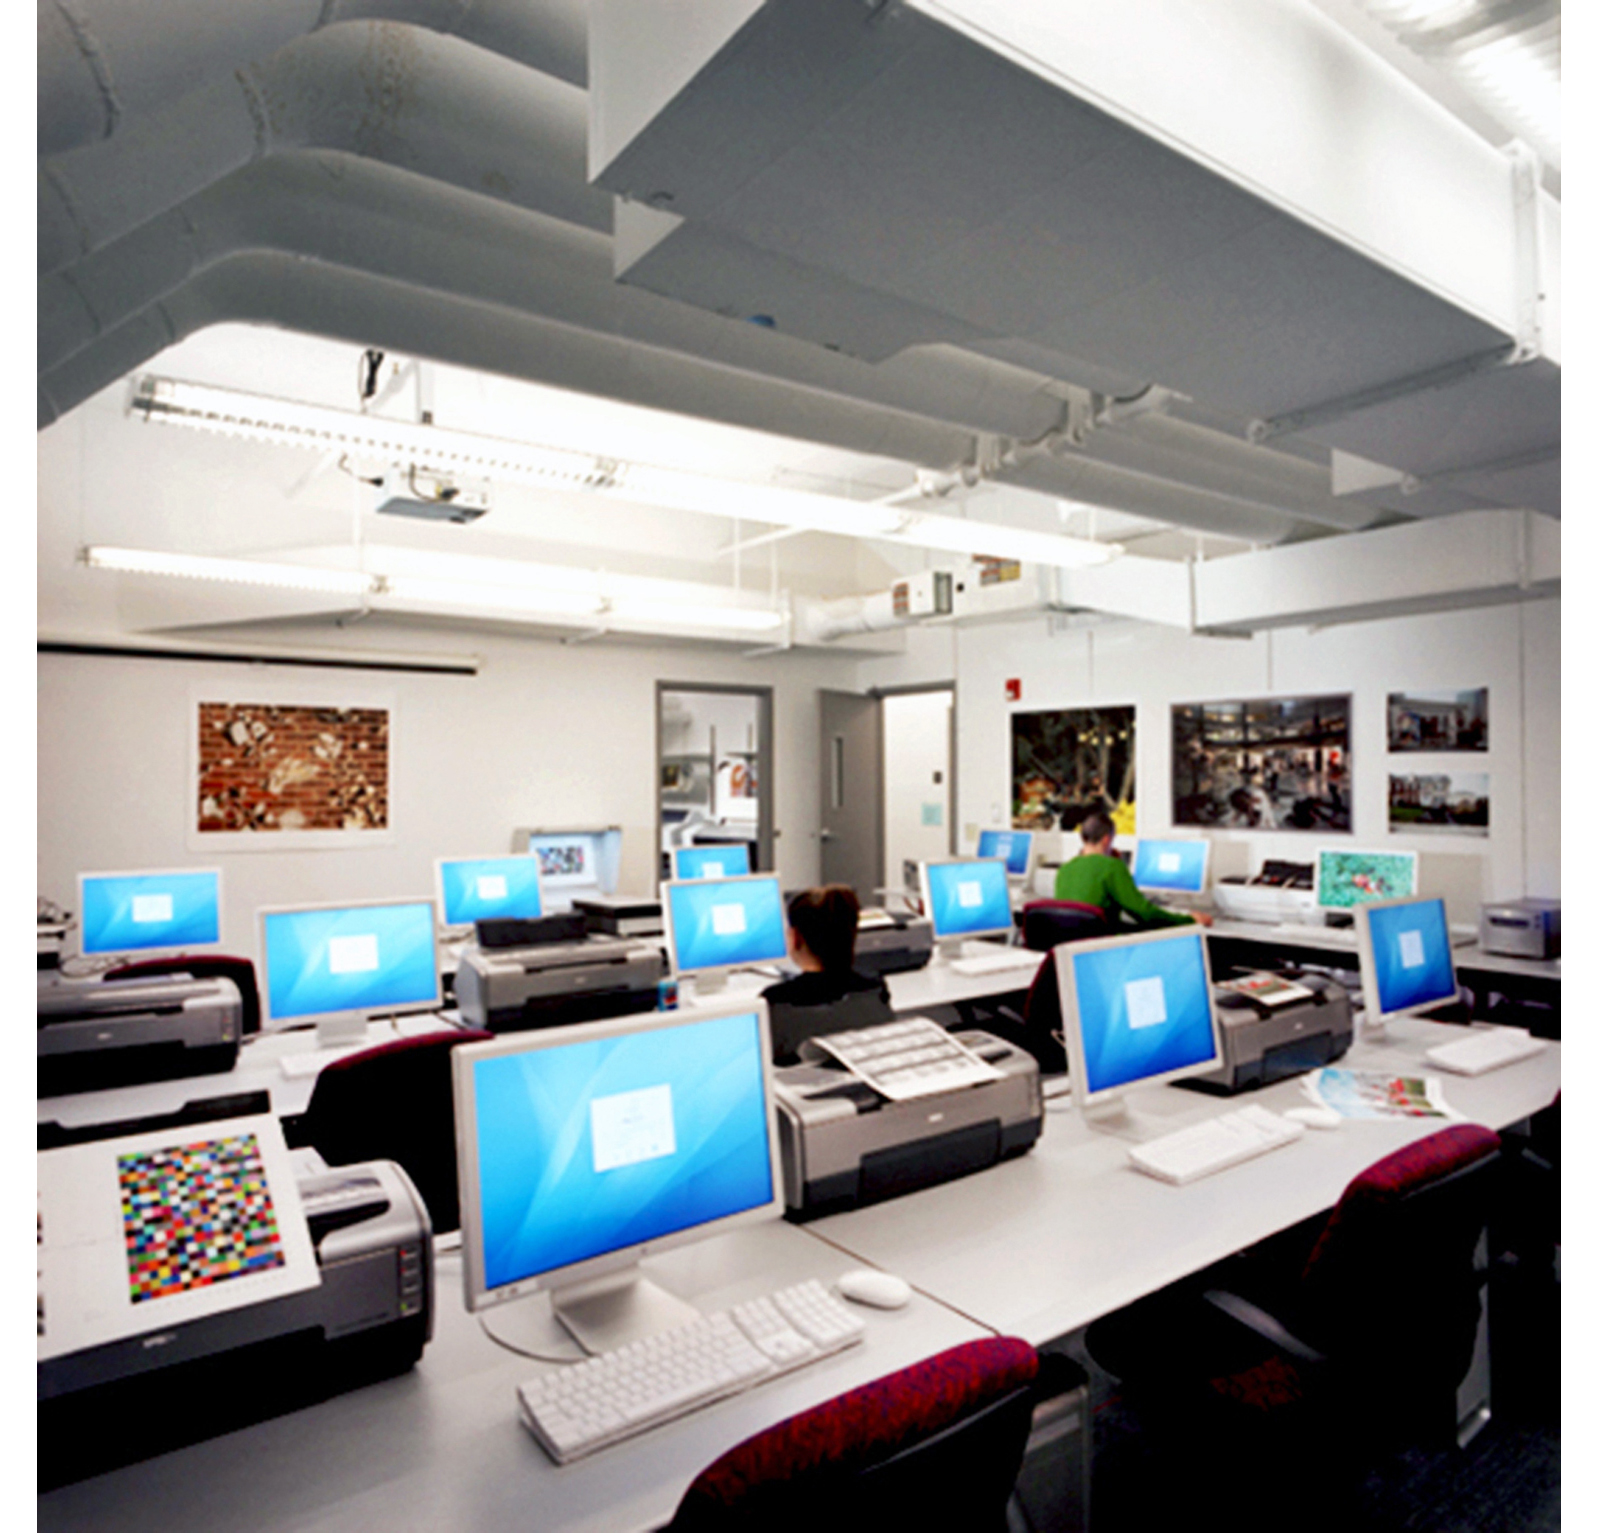 PHOTO MCAD Lab 1.jpg